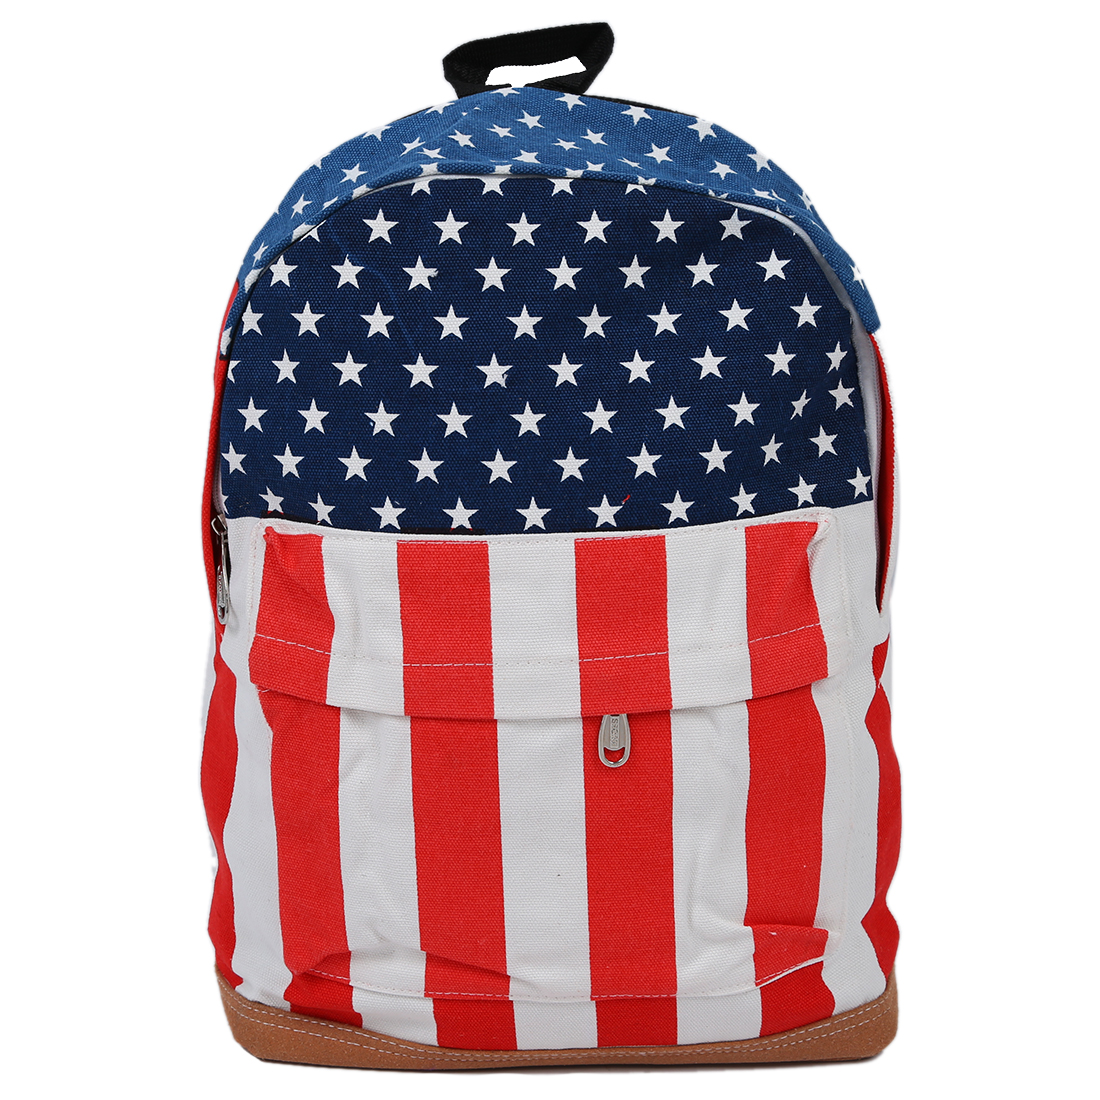 Compare Prices on Book Bags Uk- Online Shopping/Buy Low Price Book ...